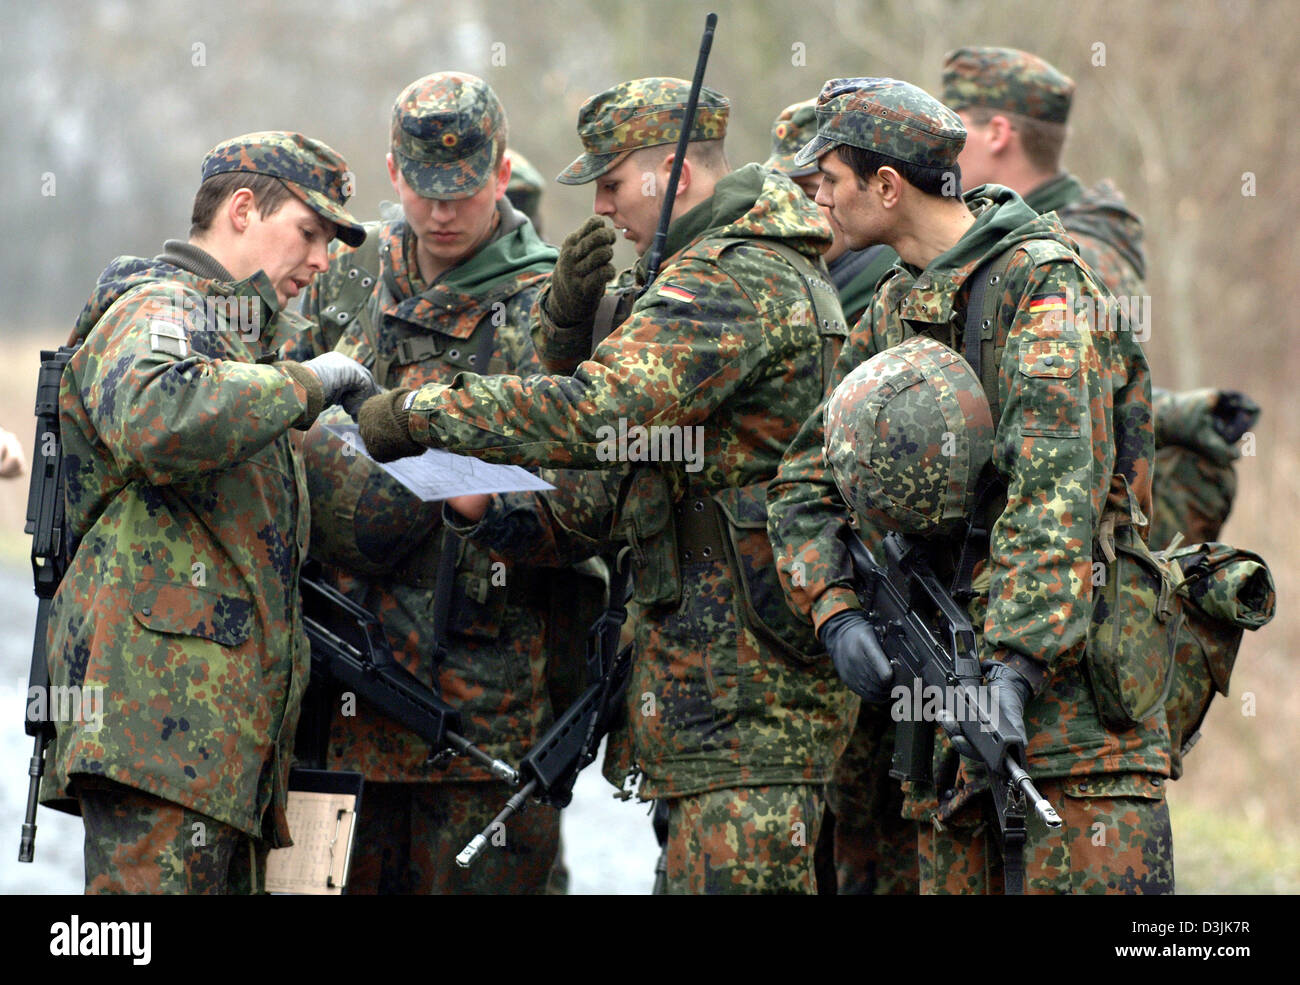 (dpa) - Recruits of the German Bundeswehr read a map at a training area in Ahlen, Germany, 18 March 2005. Within Stock Photo